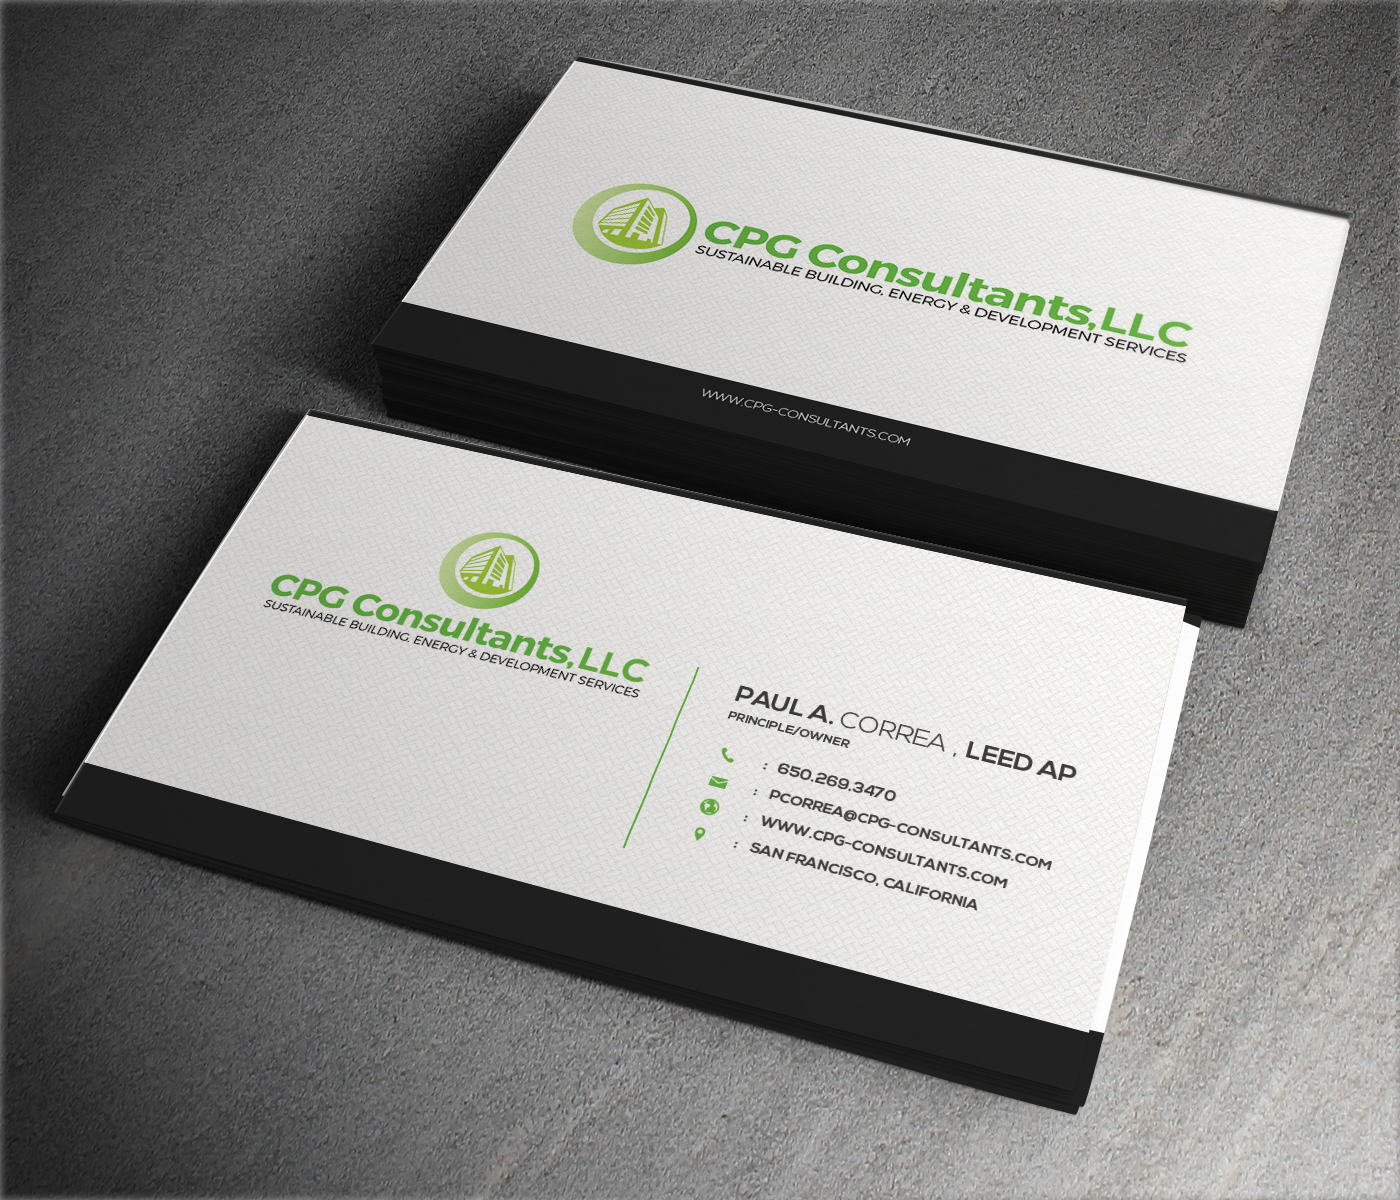 Design De Carte Visite Par ThemeDesk Technology Pour CPG Consultants